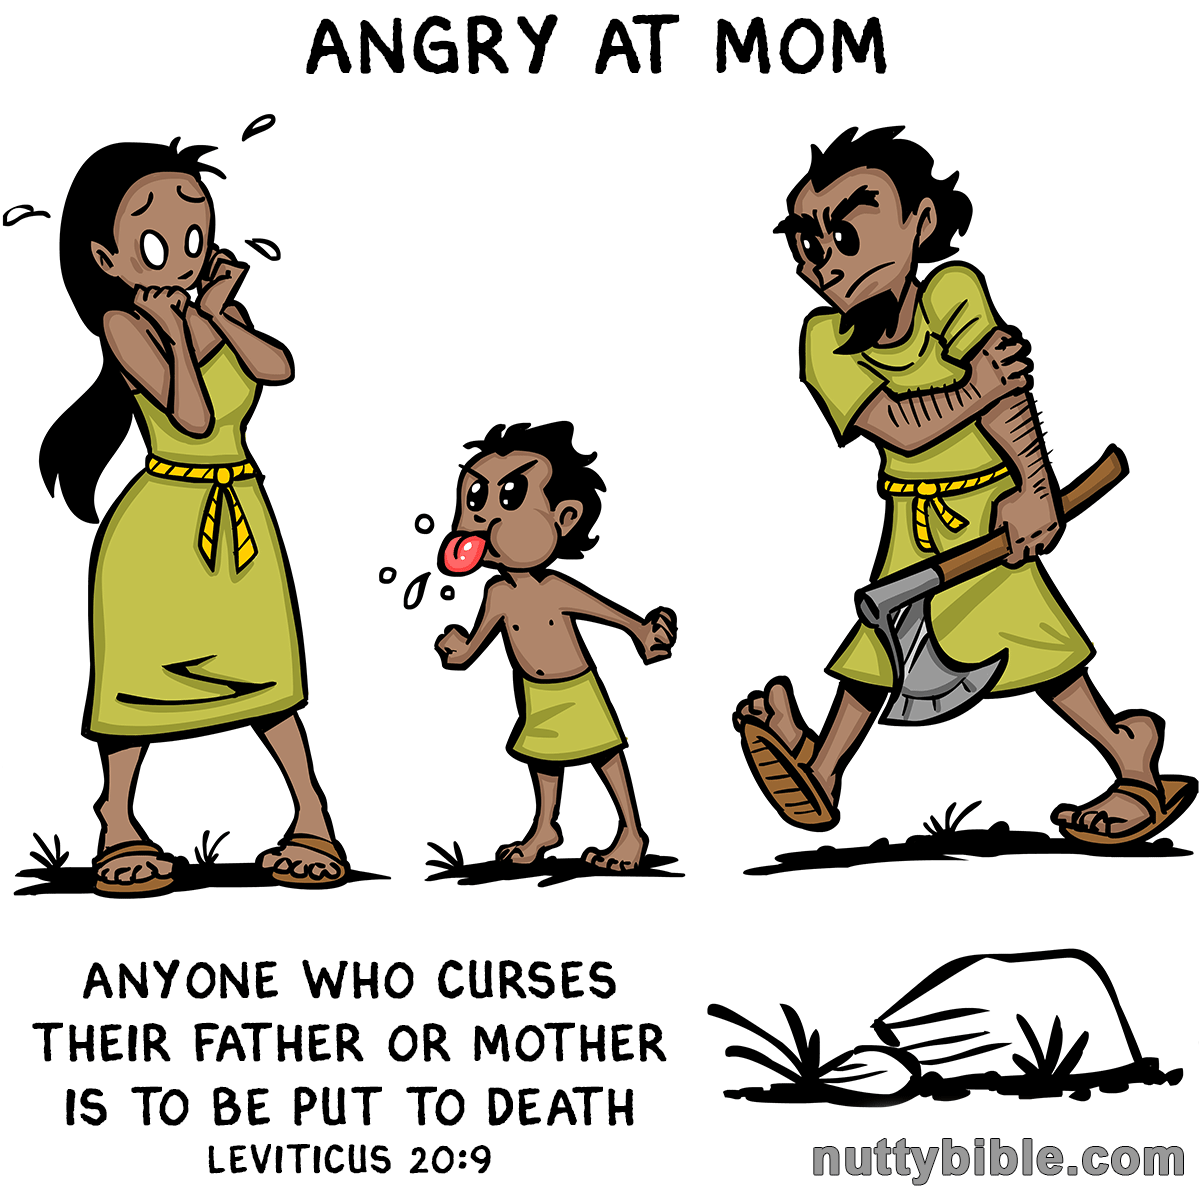 anyone who curses their father or mother is to be put to death